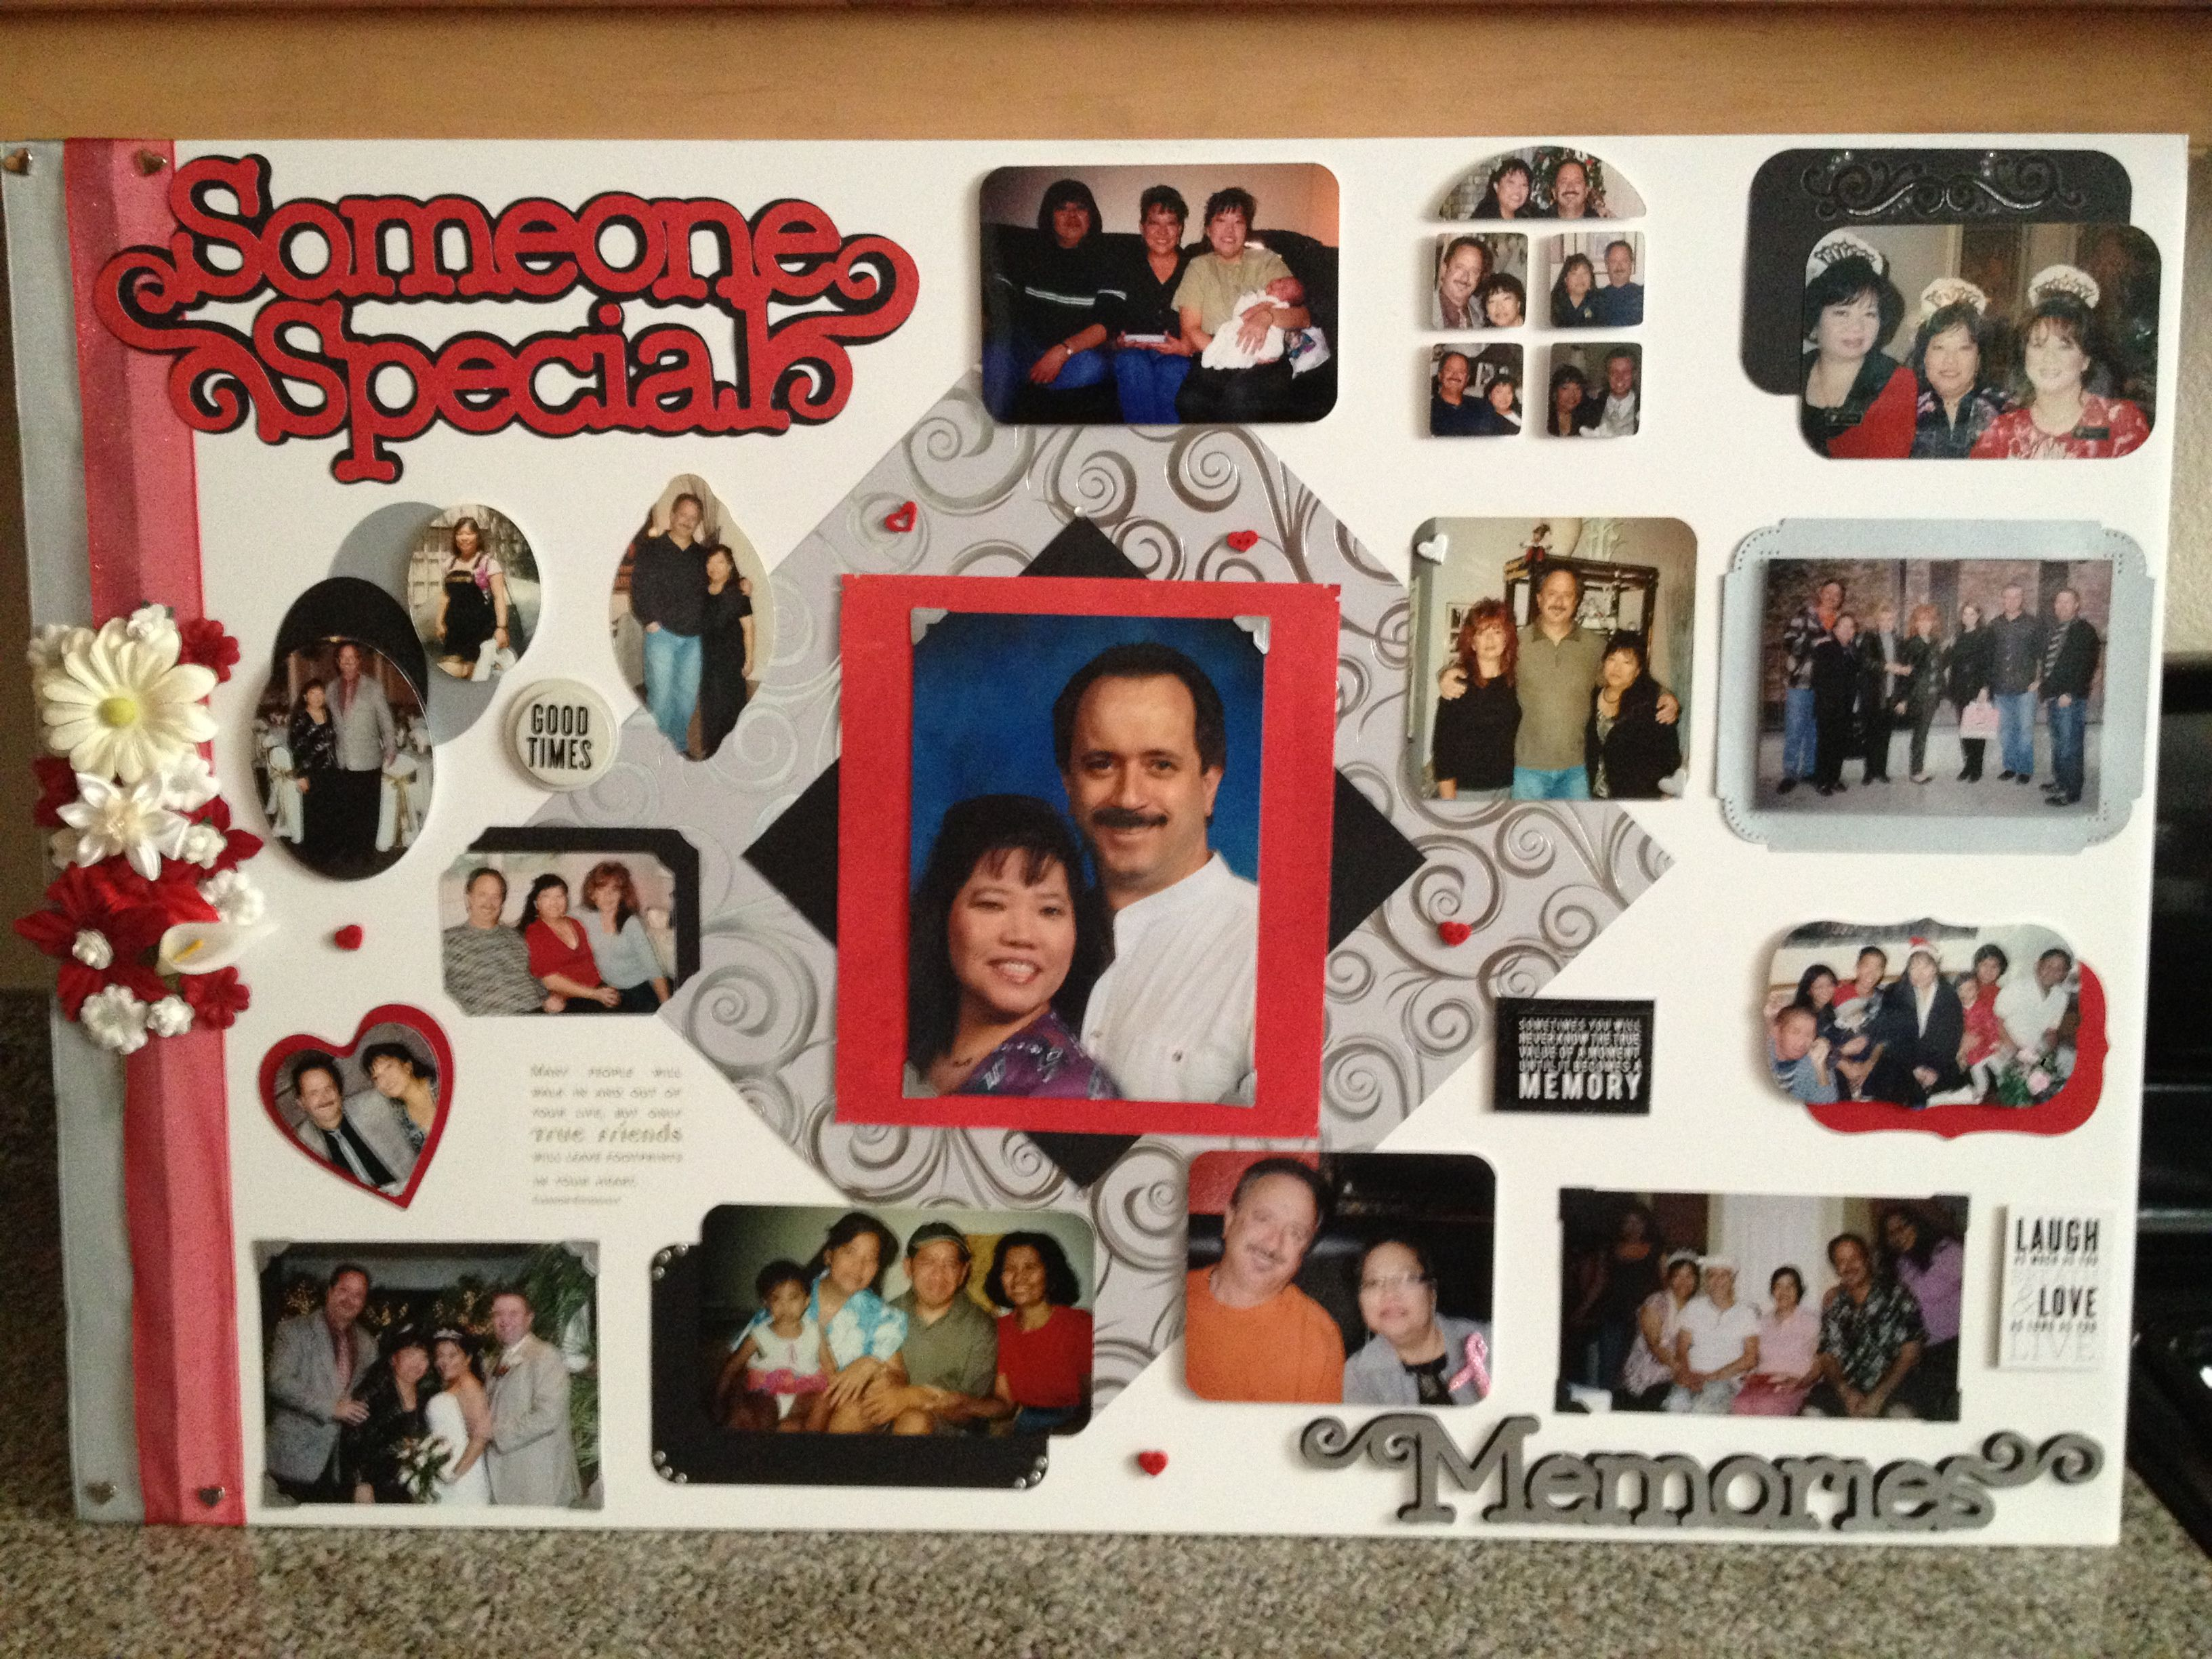 This is a memorial board for my aunt that I did for her funeral